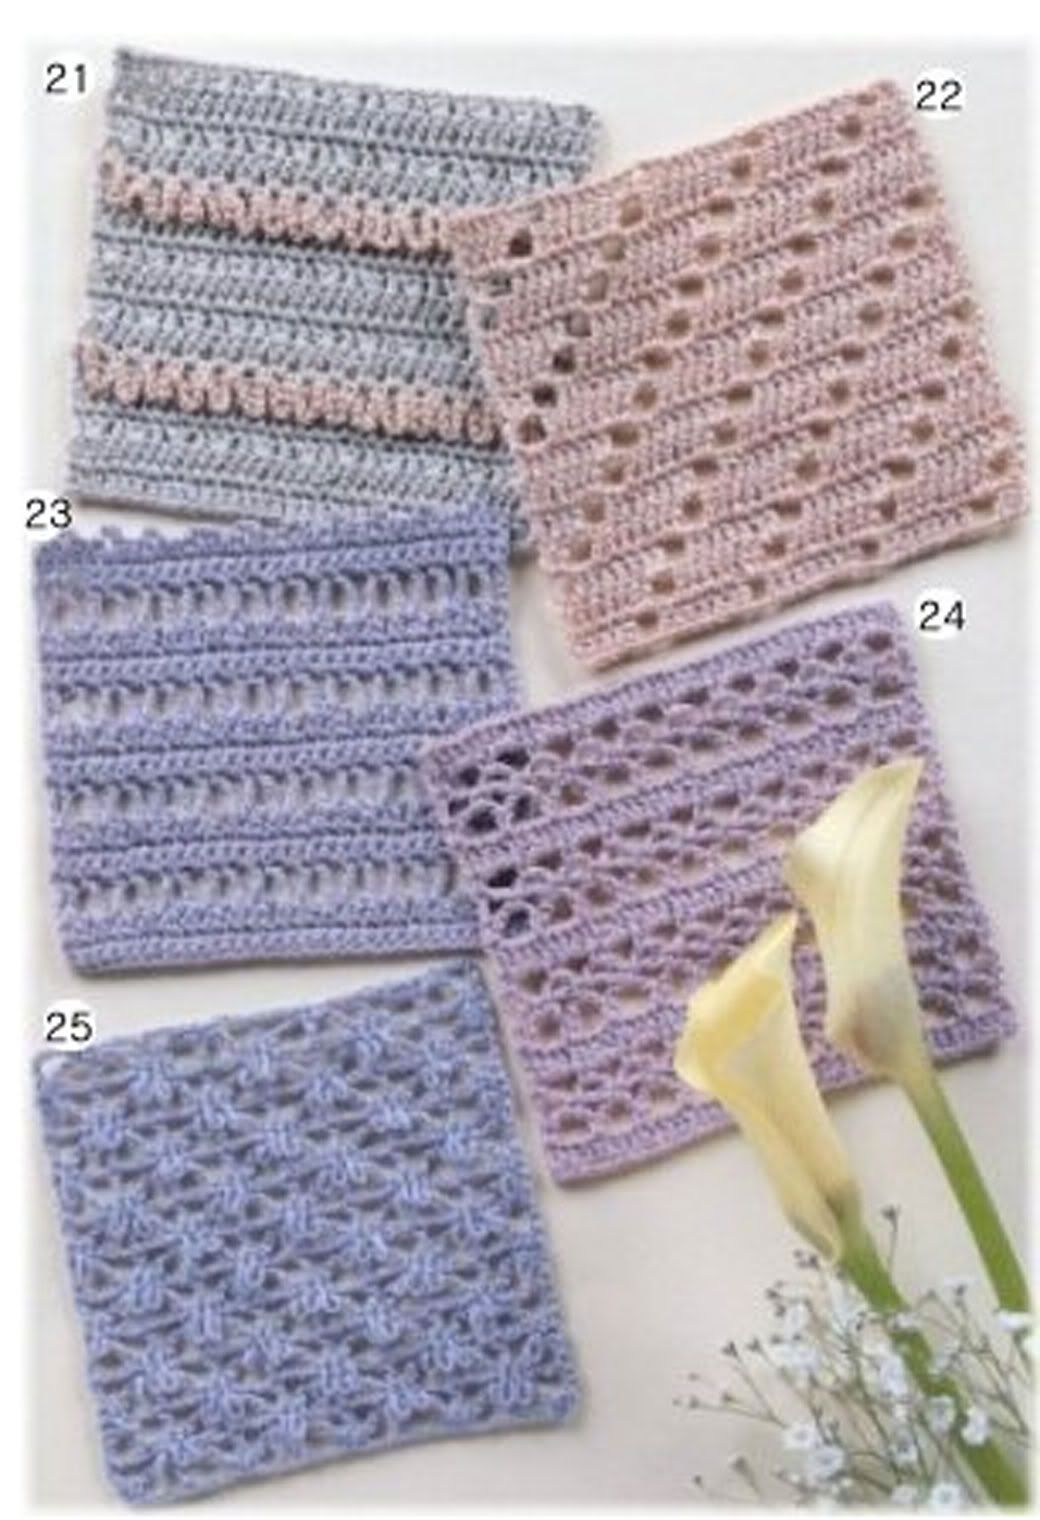 New Crochet Diagrams Funkycrochet Crush Rustic Lace Square Motif Stitches Pattern Pinterest 1040x1520